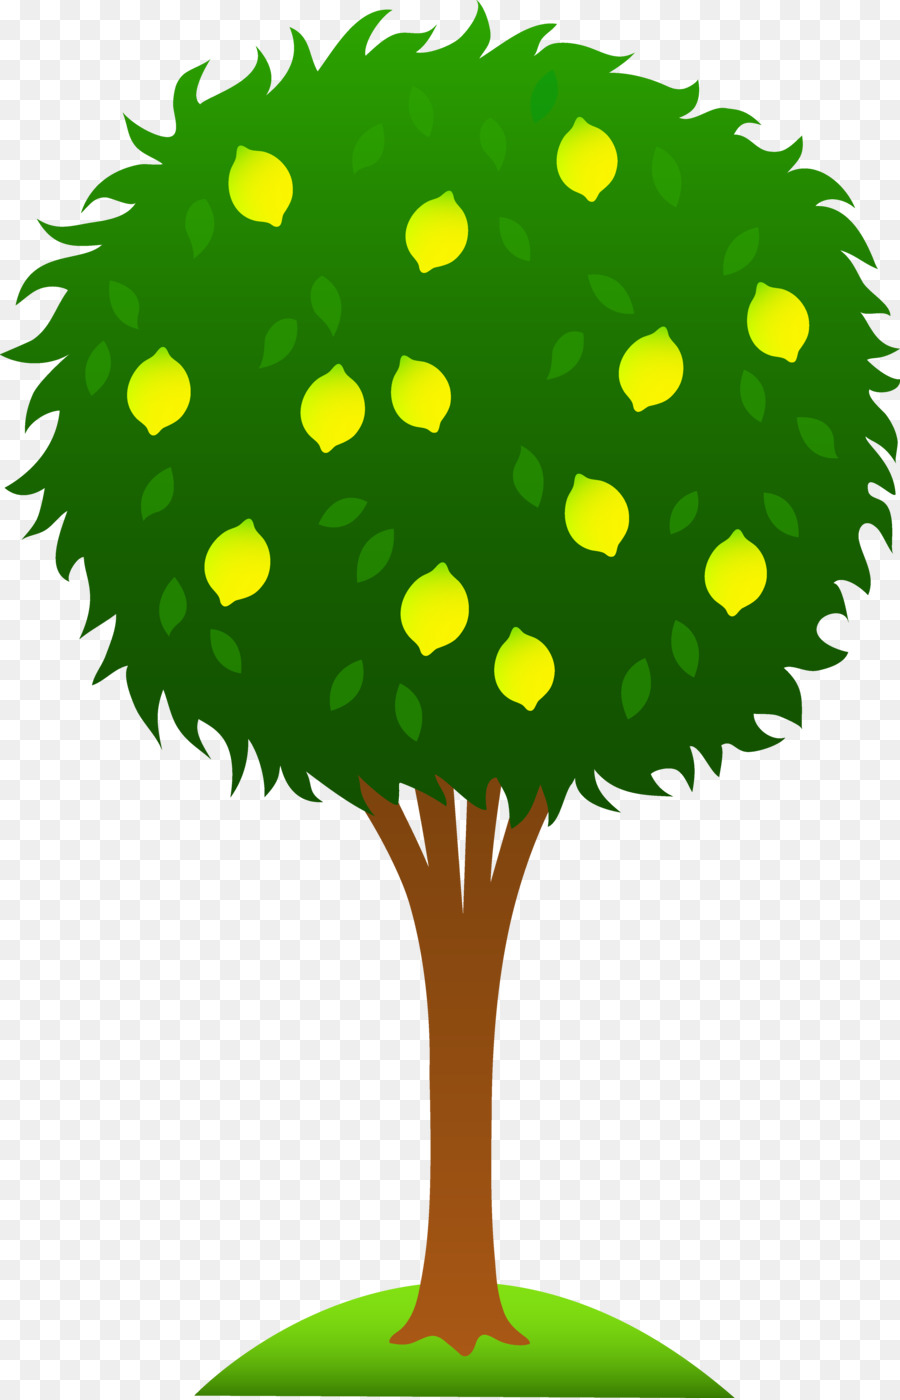 Mango Tree Cartoon Images